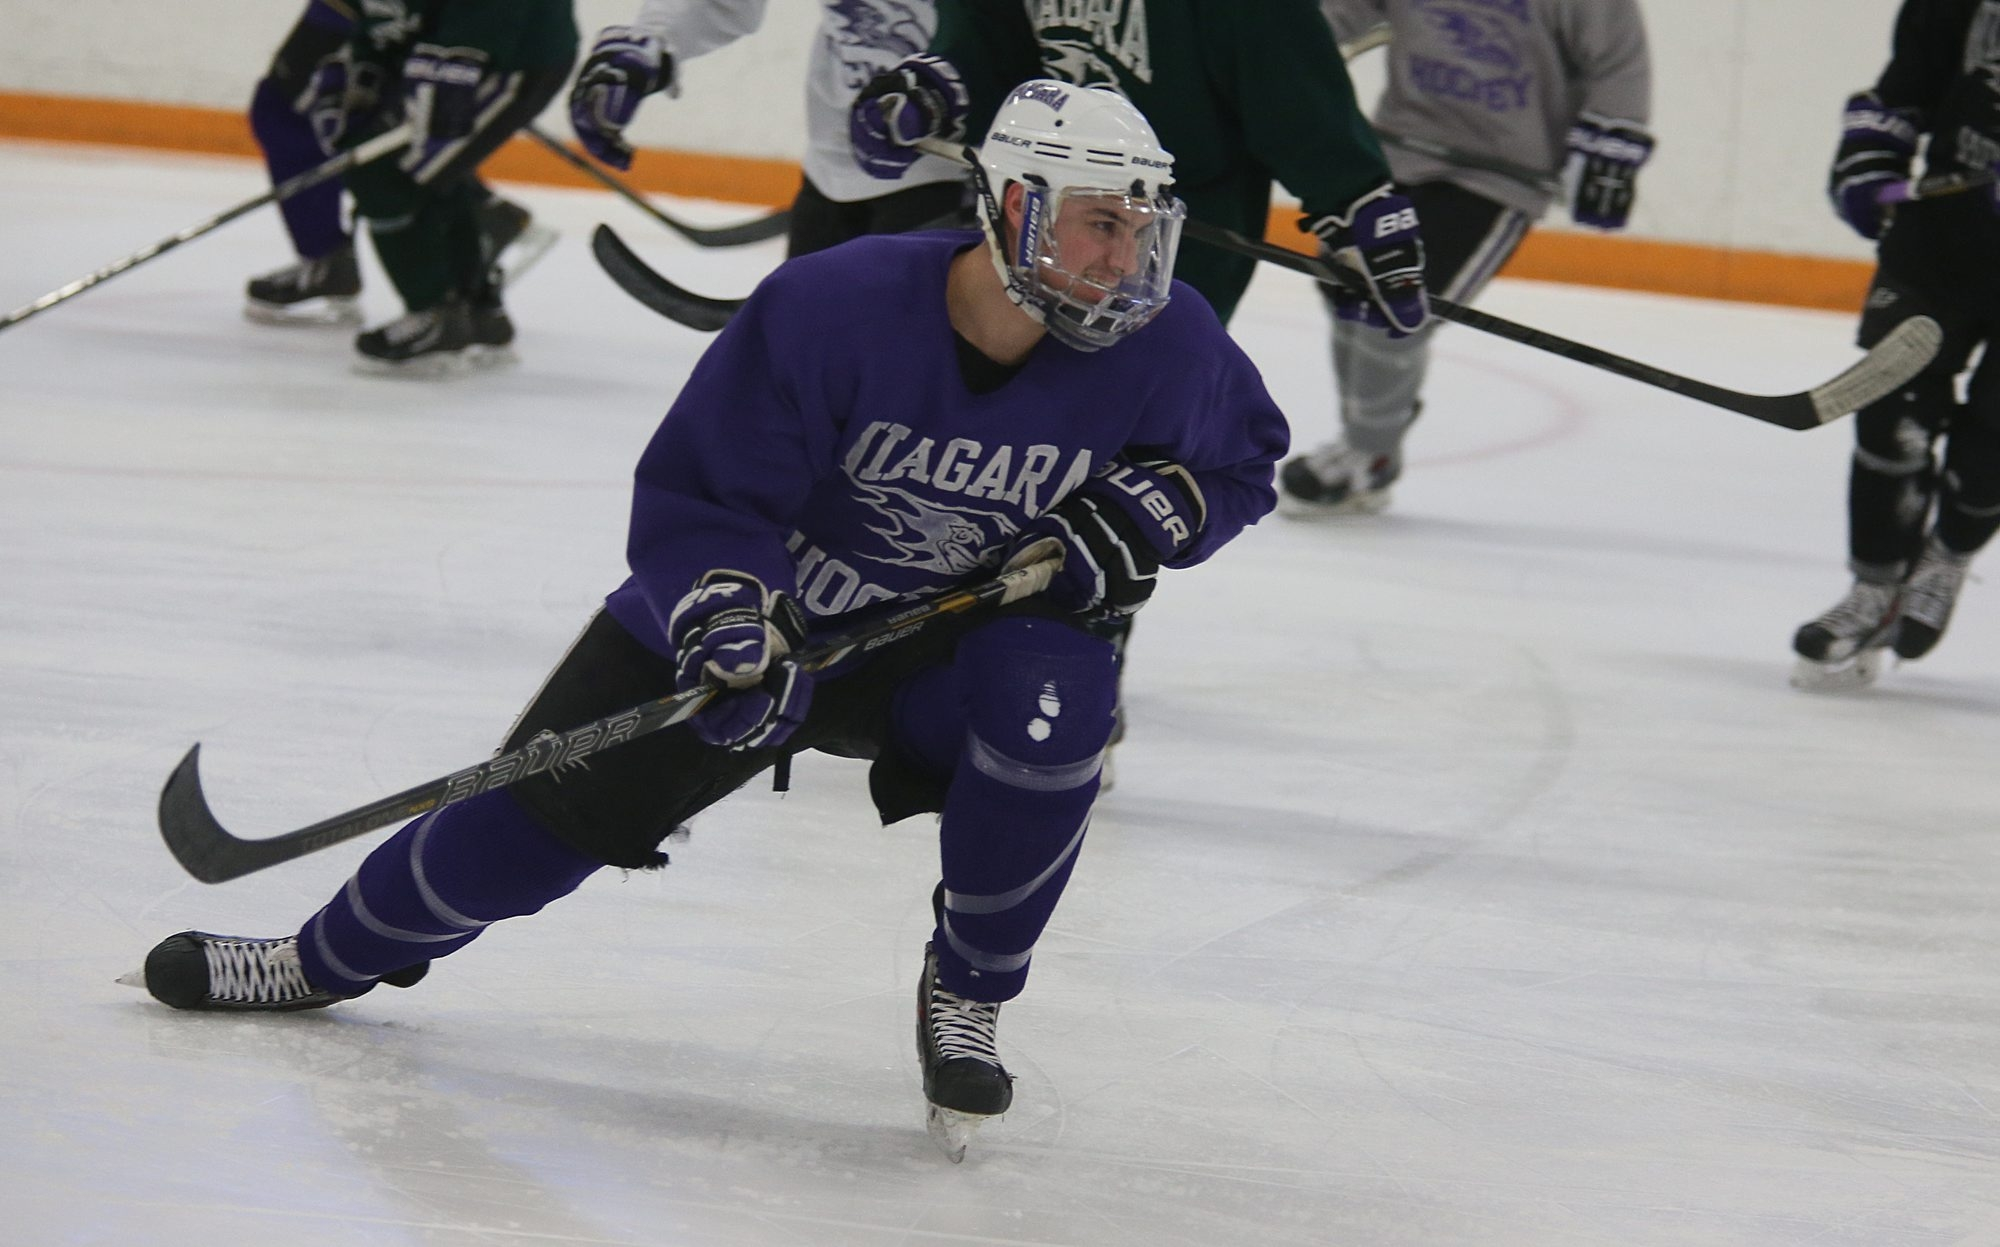 Vince Muto of Niagara Falls found the choice of offers between Fairbanks and Niagara an easy one to make.